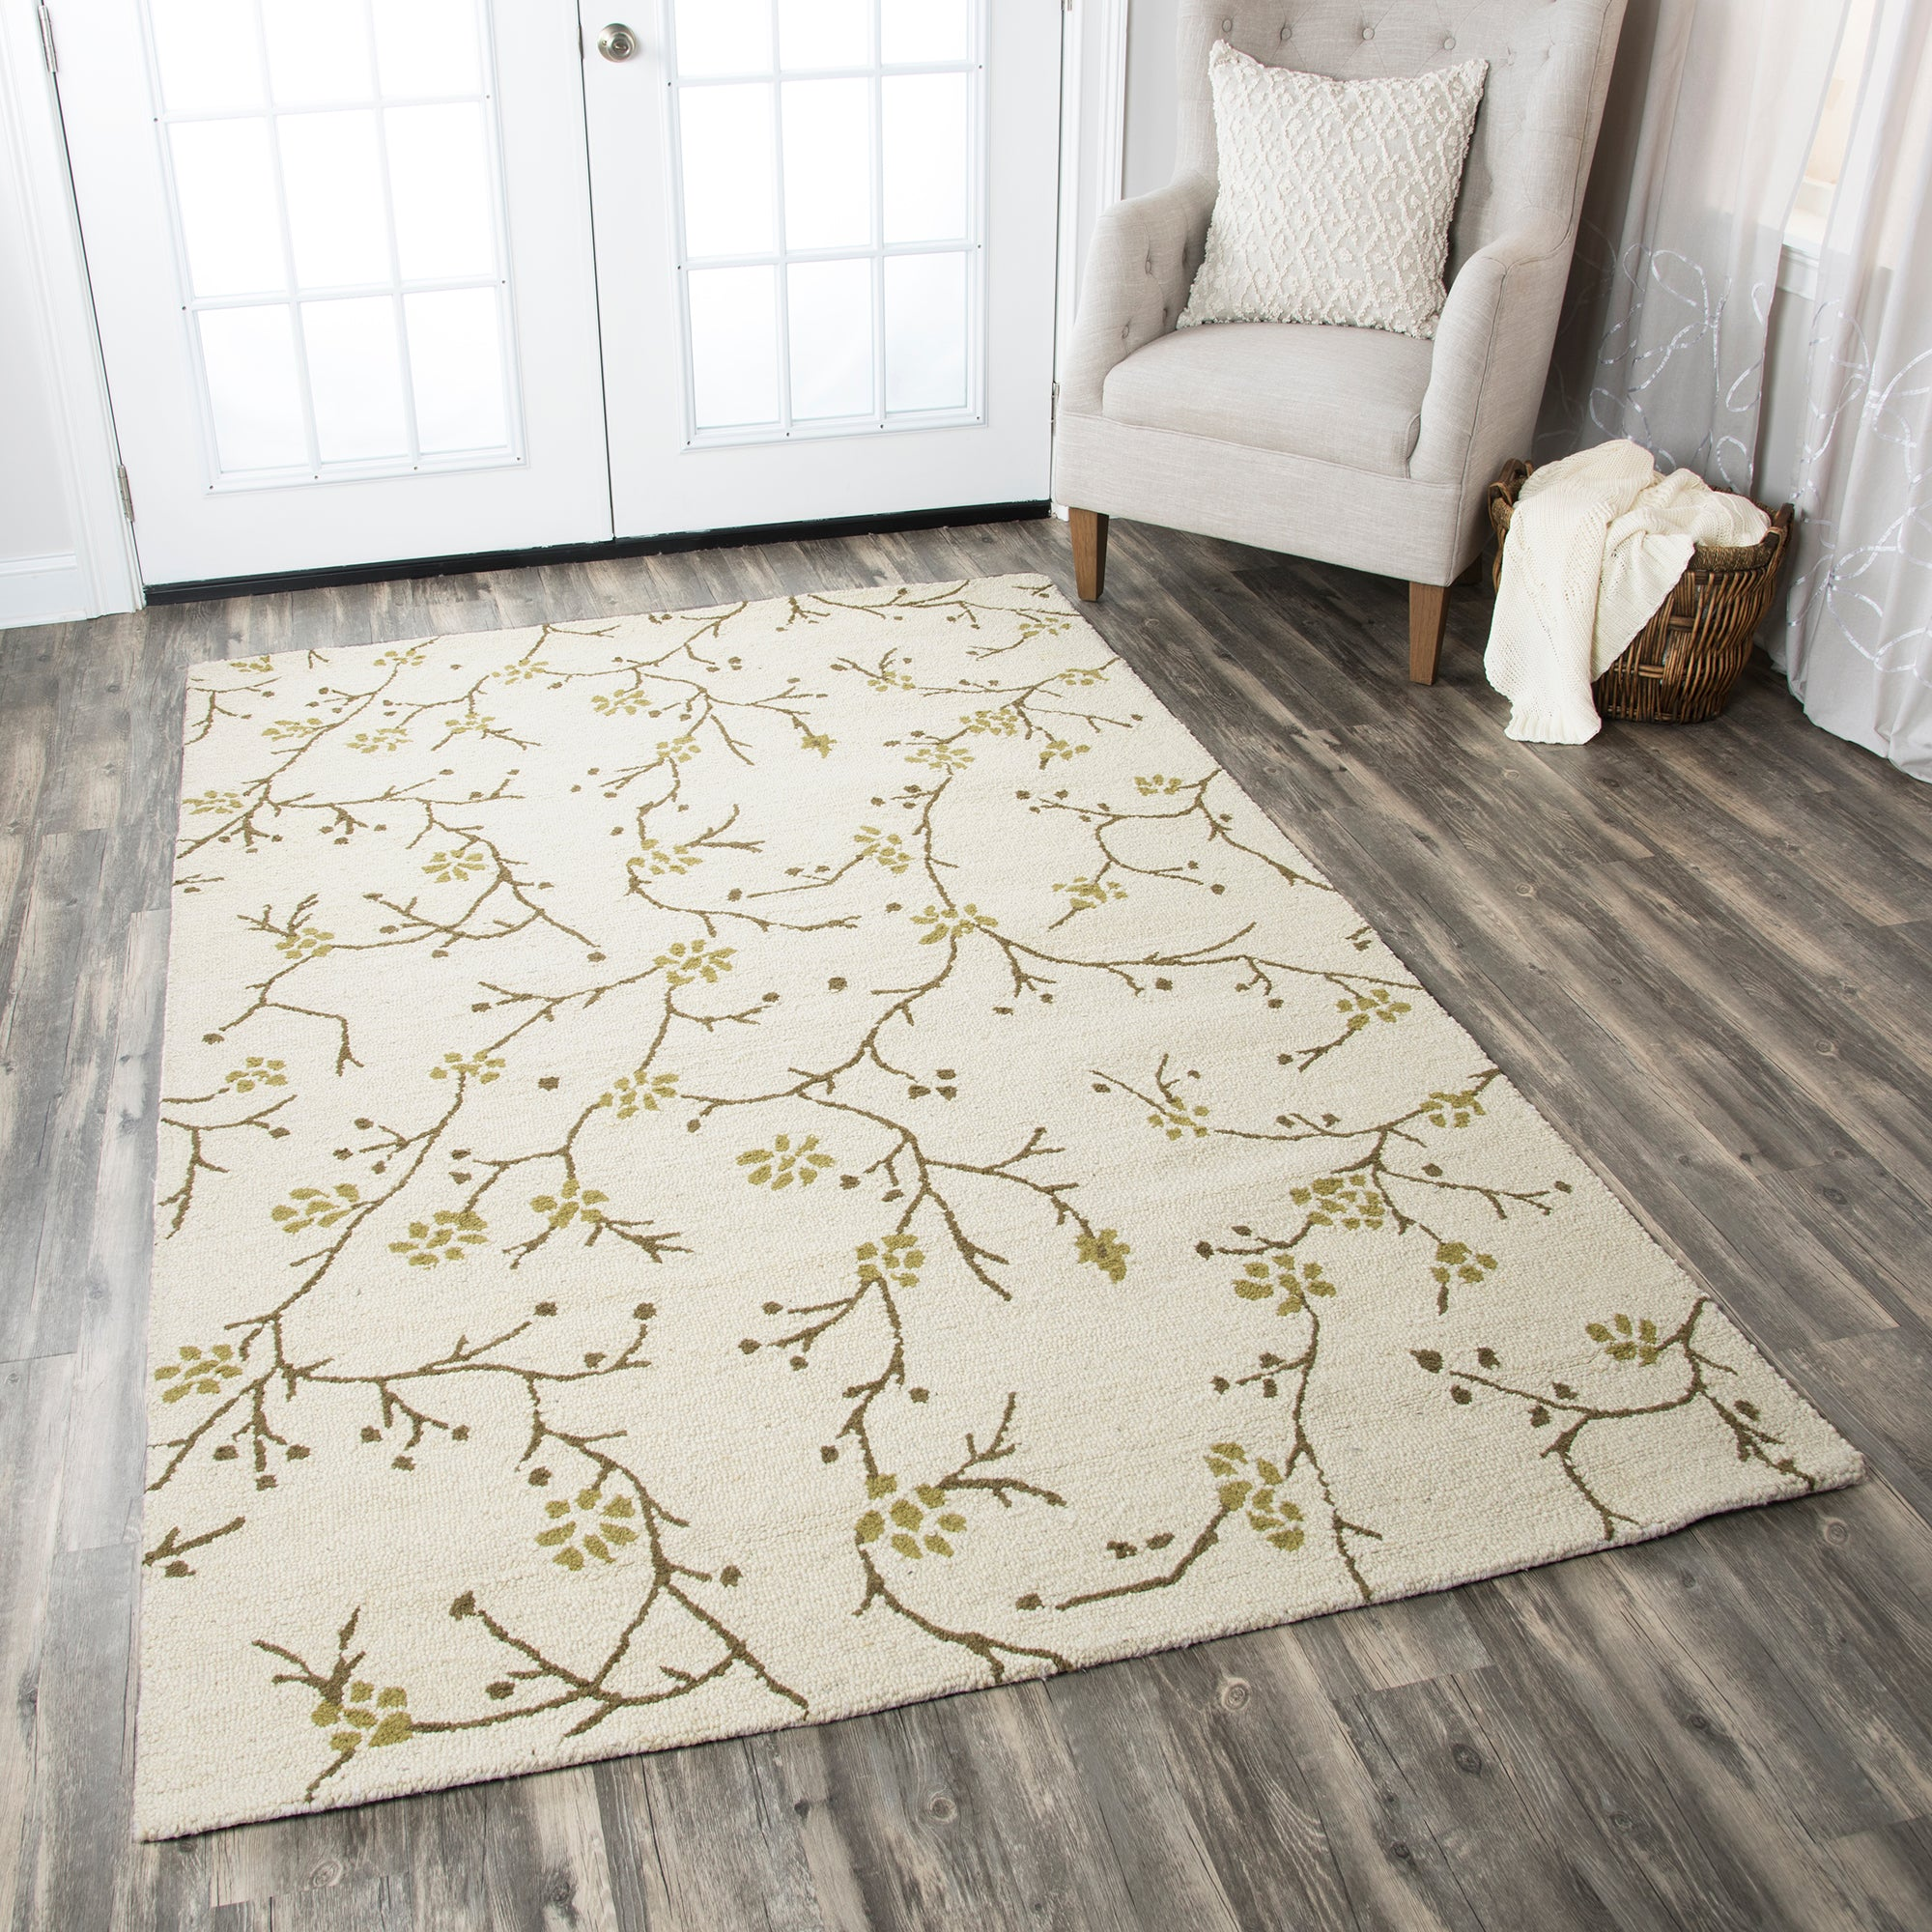 Rizzy Home Country CT1634 Ivory Floral Area Rug